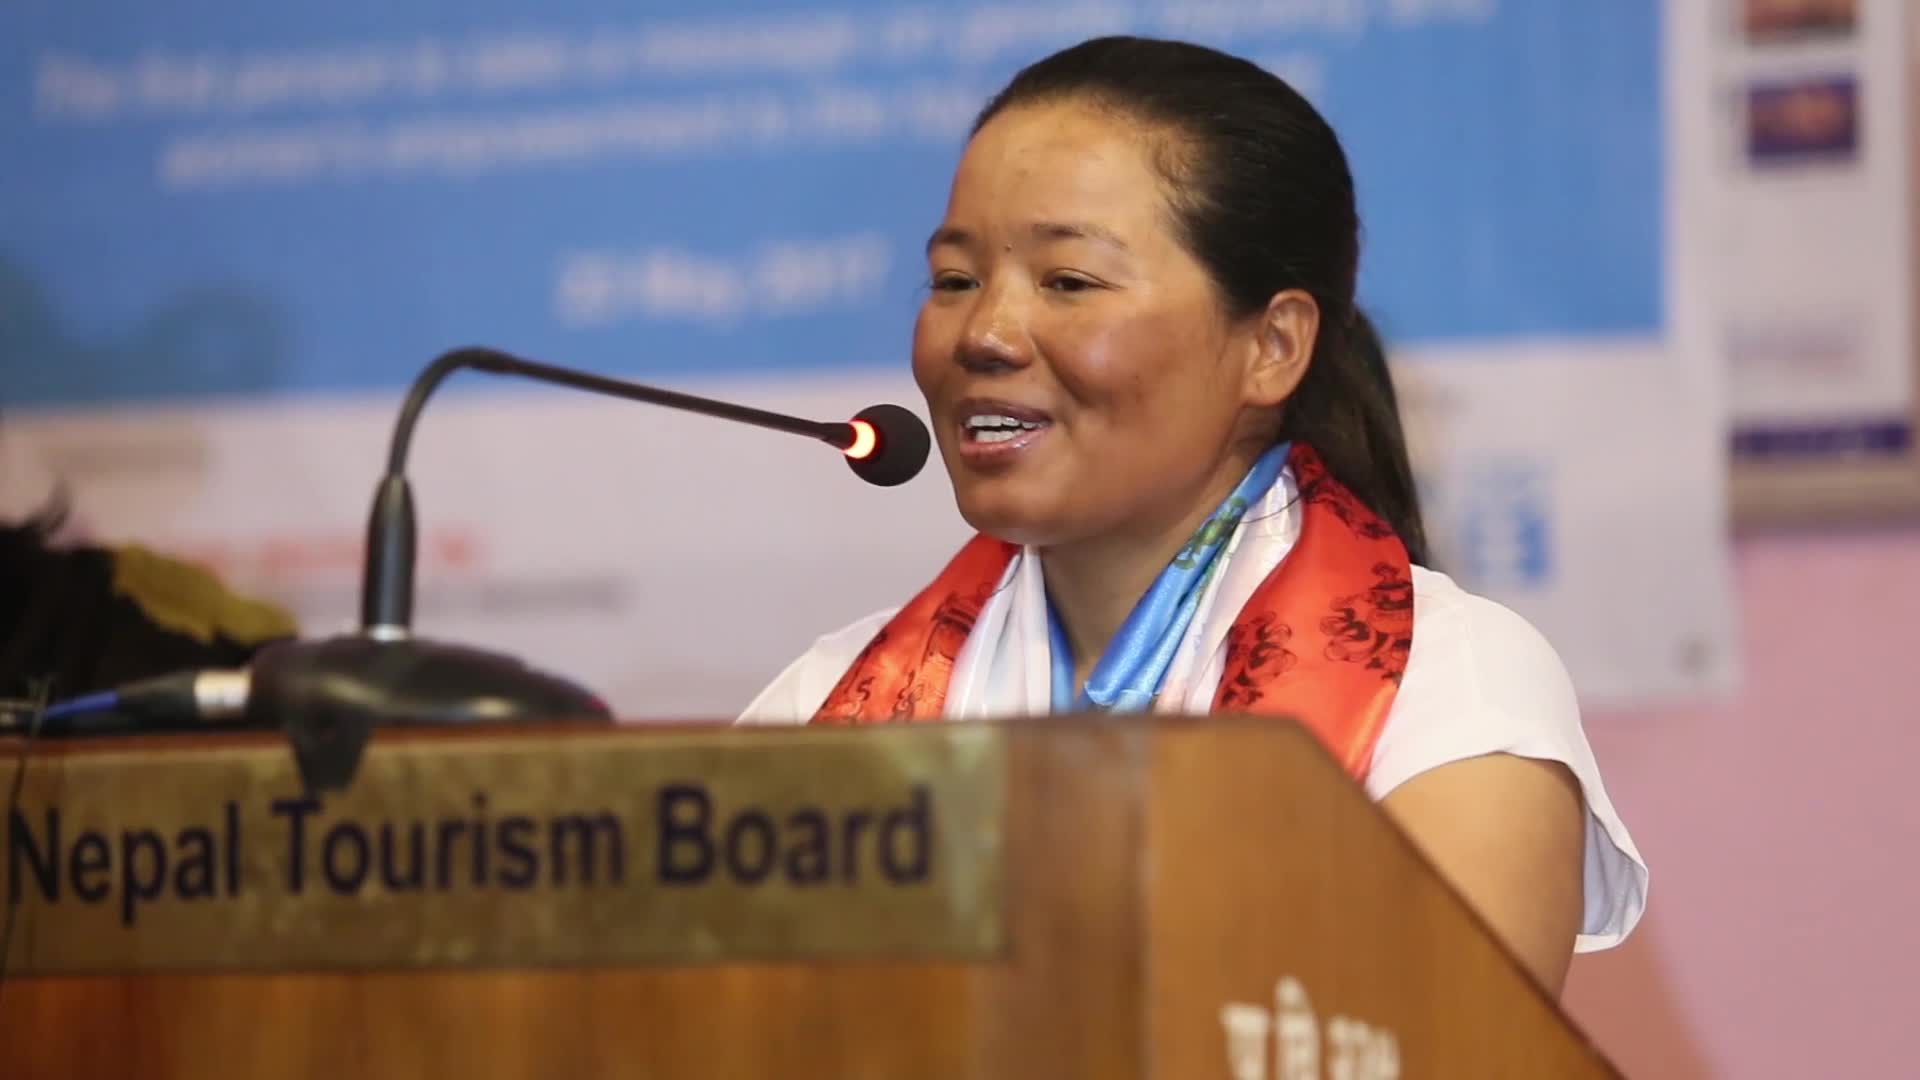 Kanchhi Maya Tamang climed the Mt Everest for women empowerment and gender equality